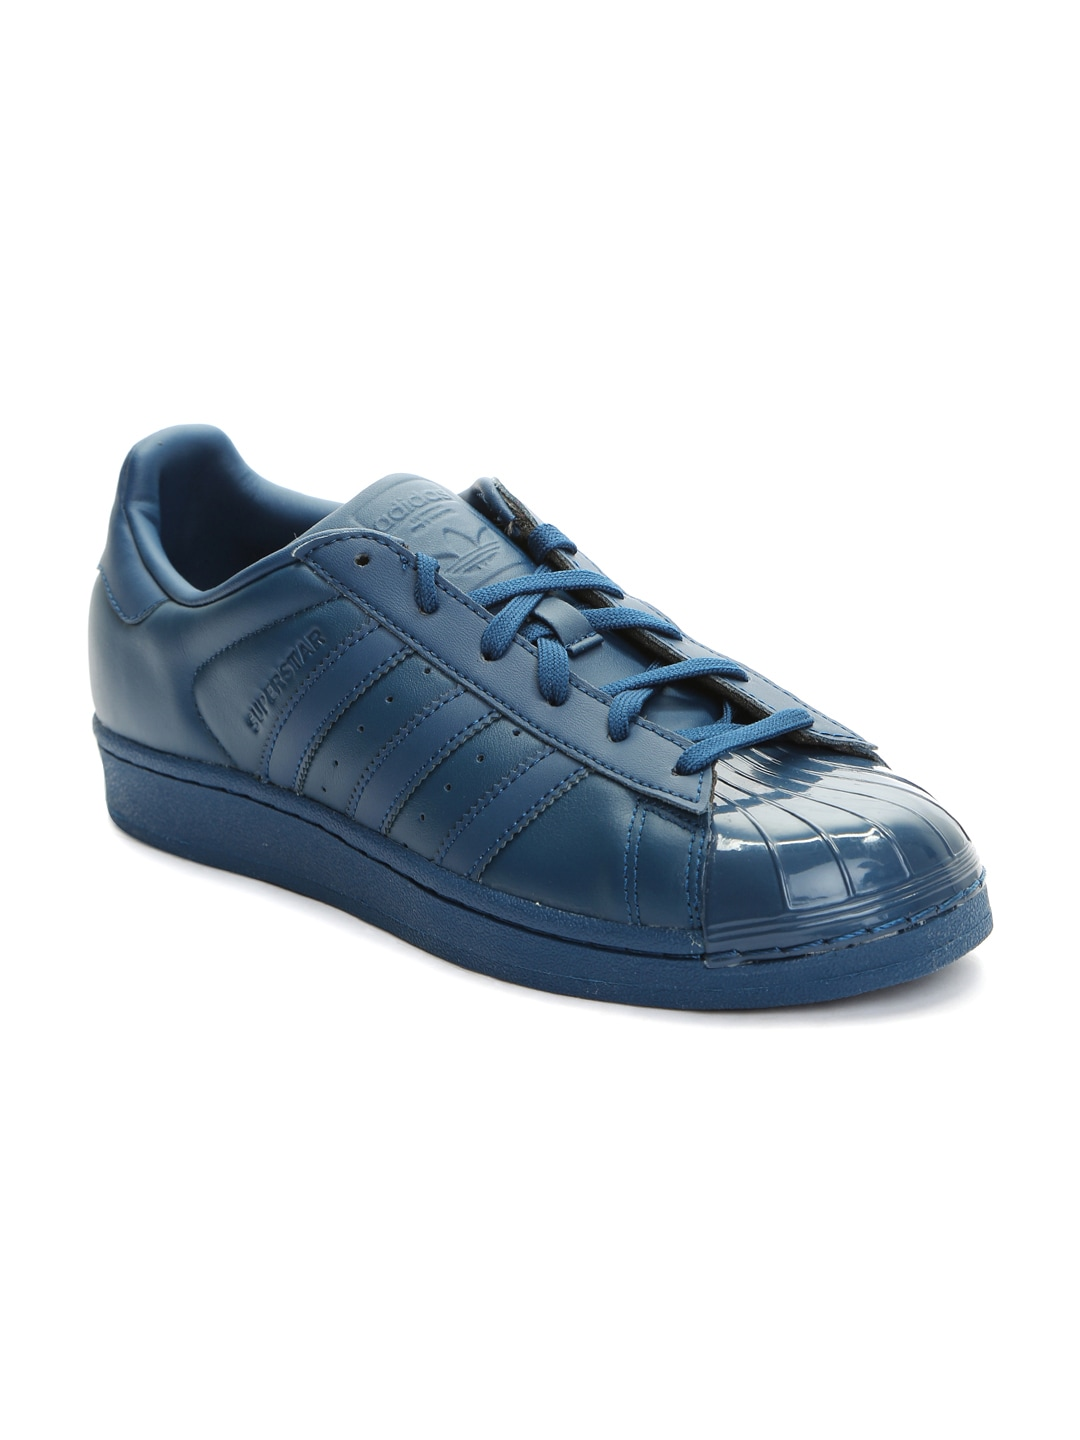 size 40 0875a ee976 Adidas s76723 Originals Women Navy Superstar Glossy Toe Leather Sneakers-  Price in India. adidas-style code- s76723